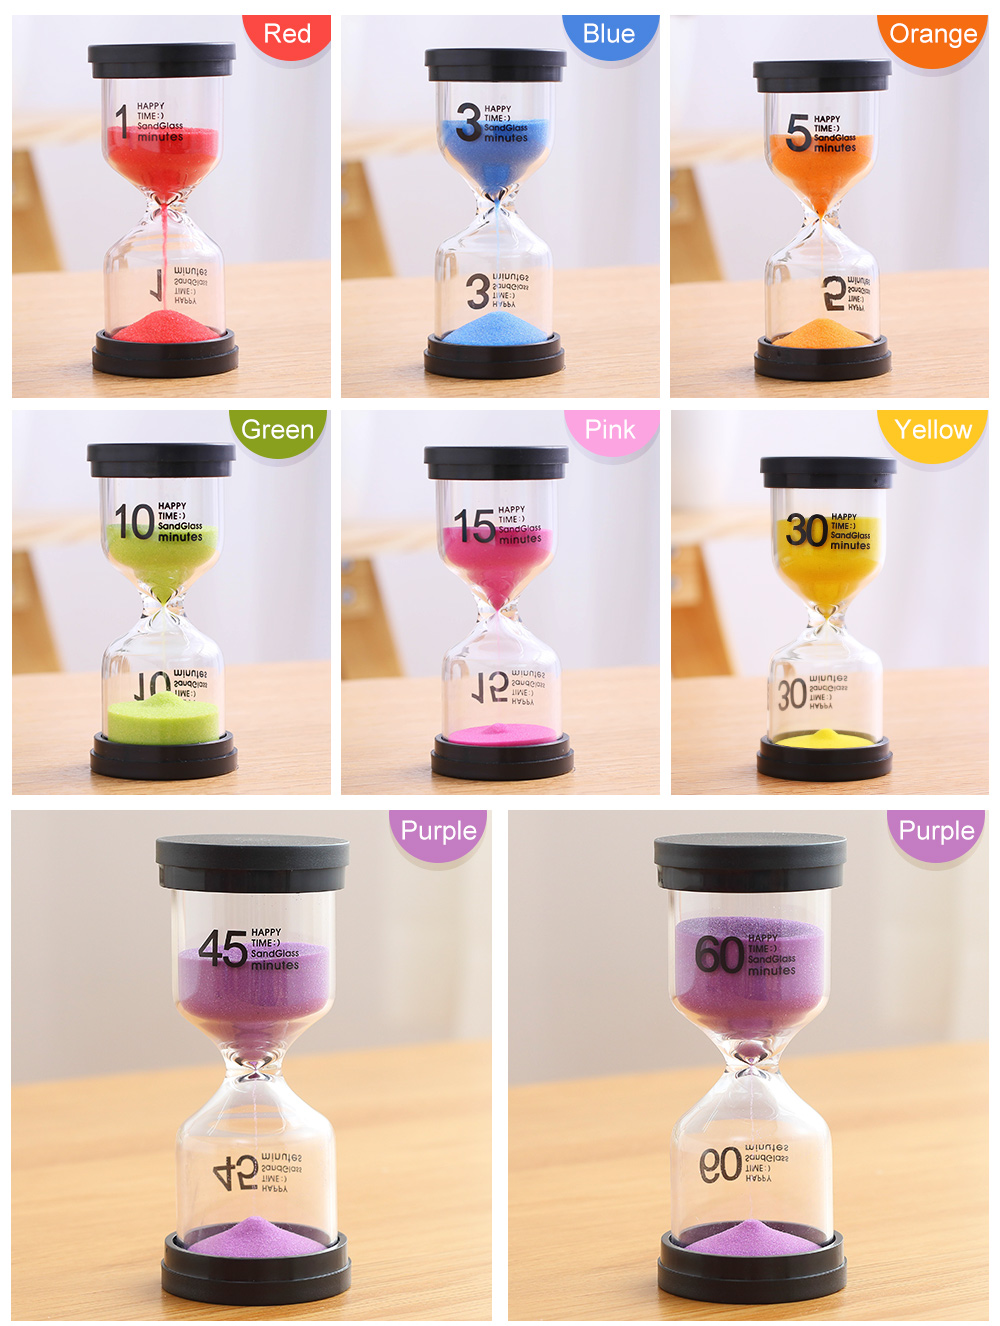 2Pcs 3 Minutes Hourglass Kids Toothbrush Smiley Sand Timer Glass Xmas Gifts